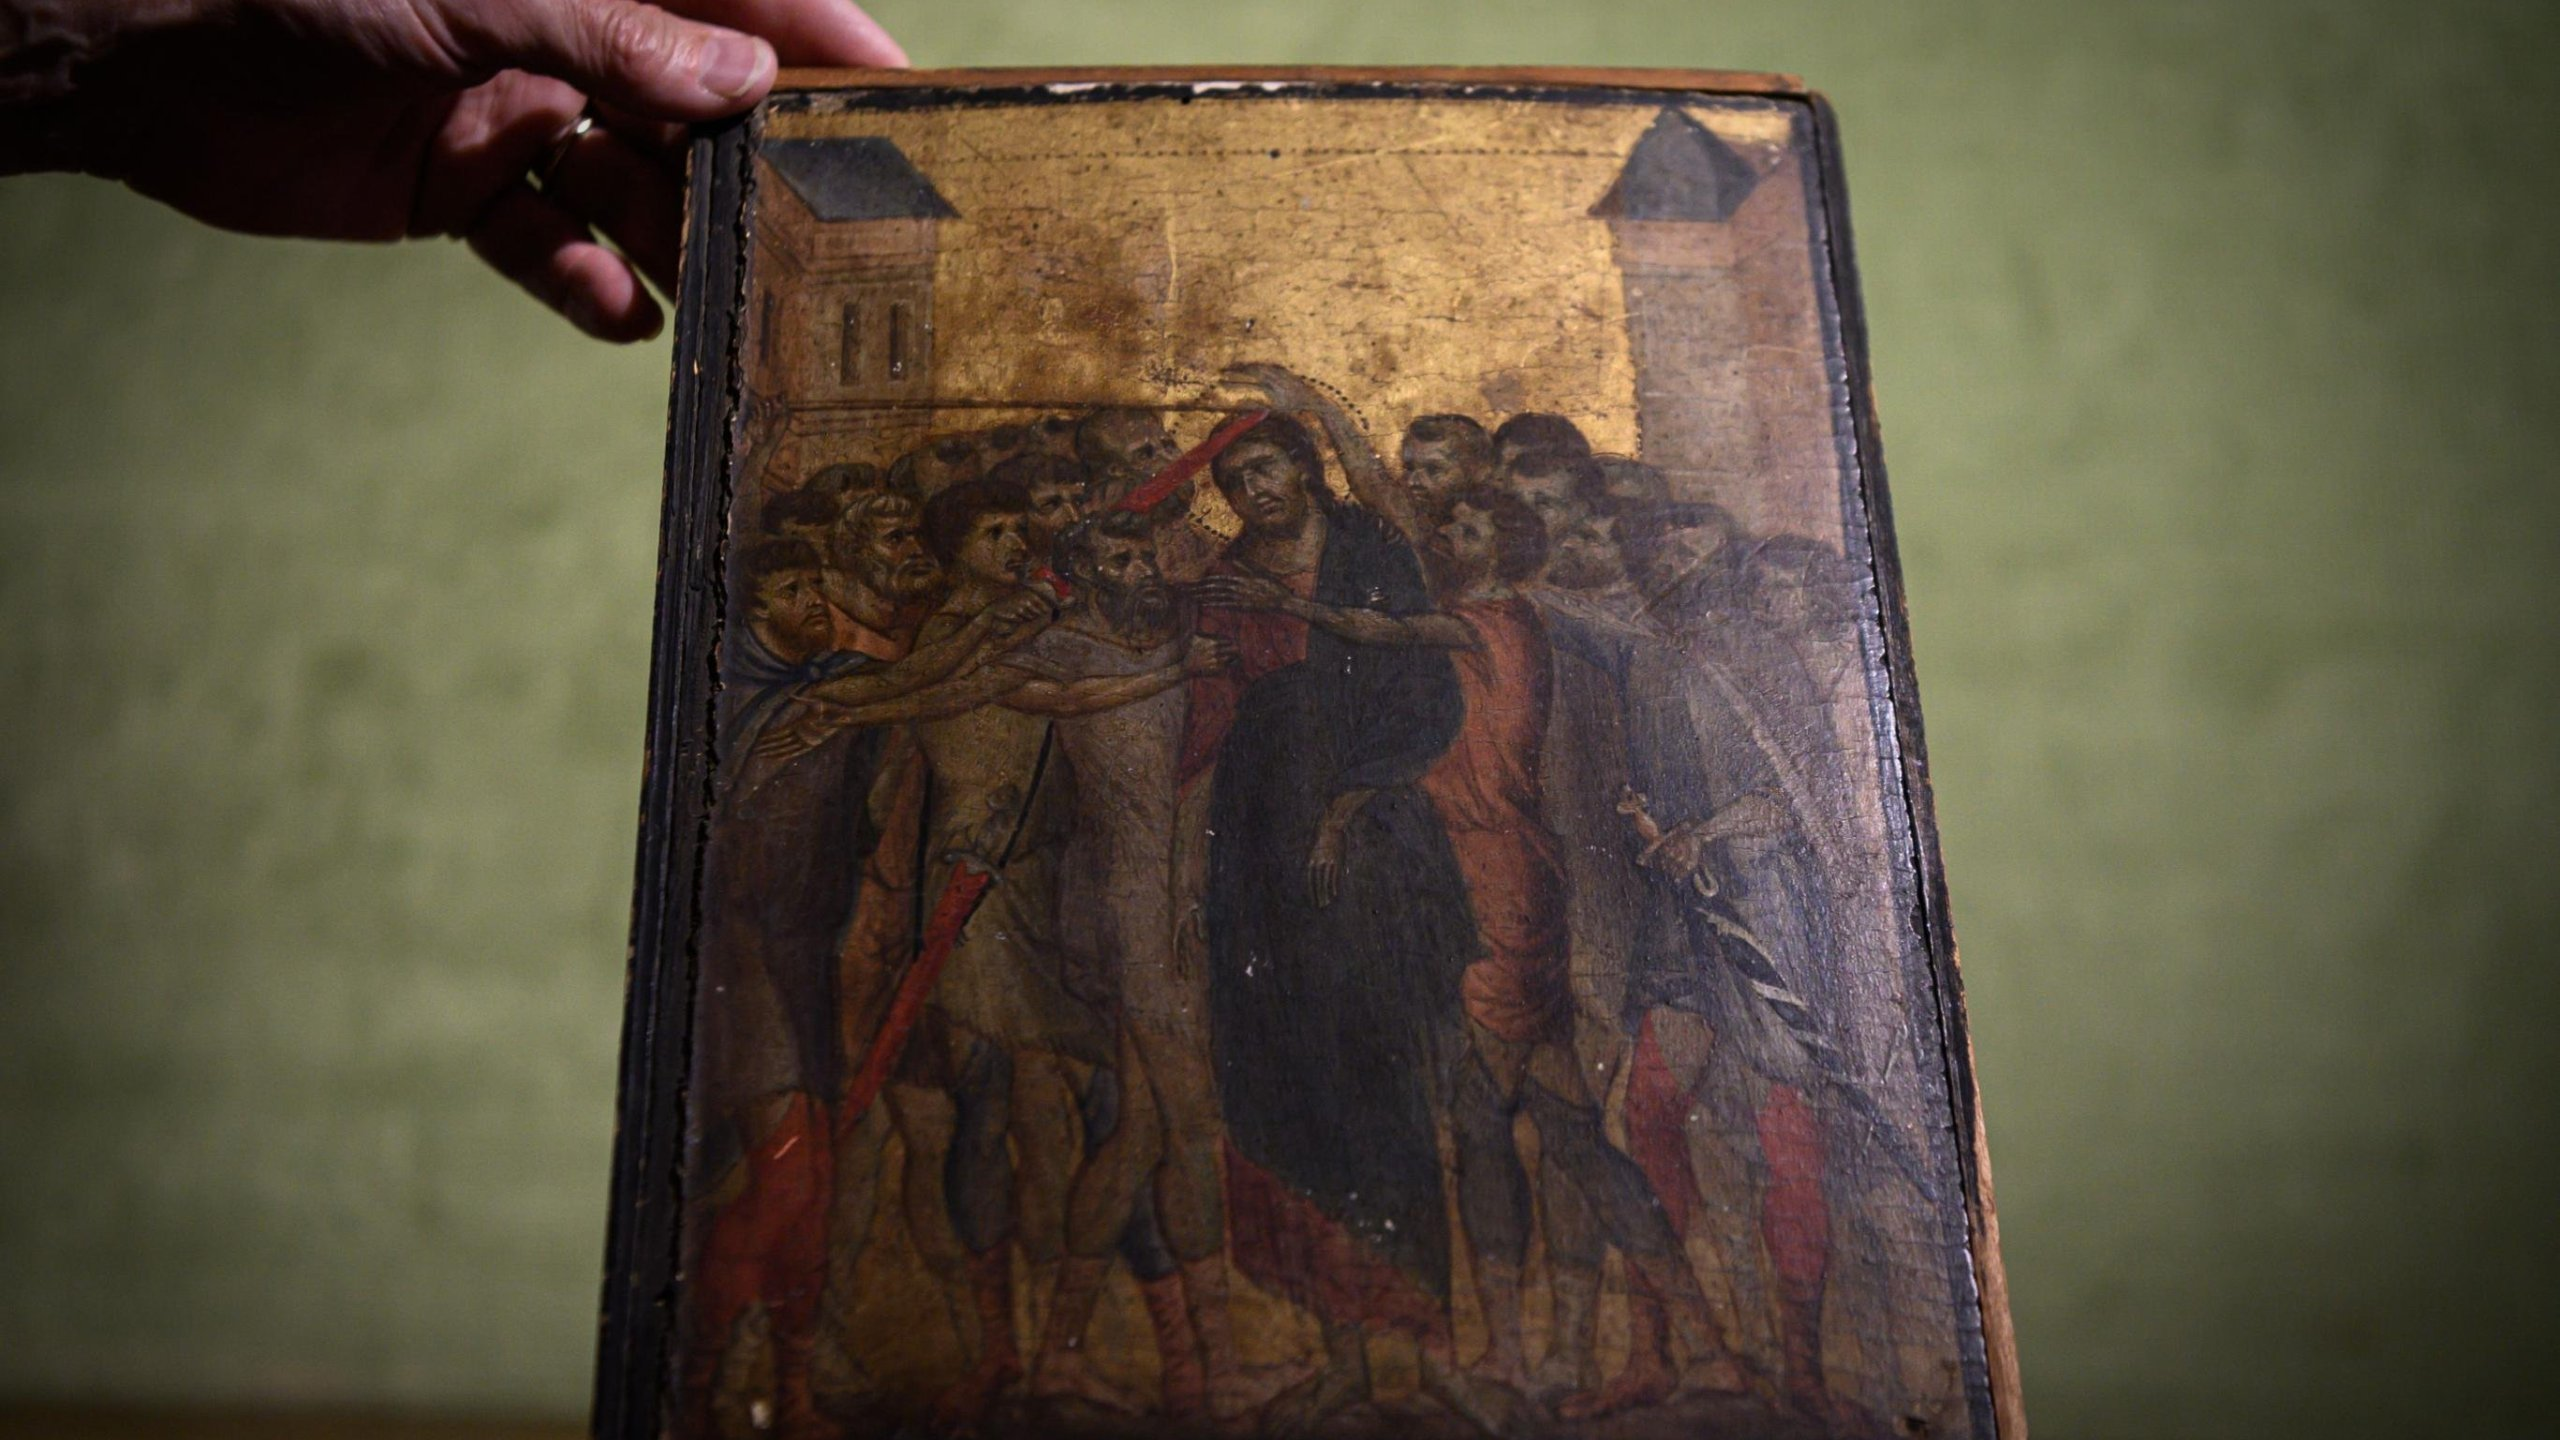 A lost masterpiece by 13th-century Florentine painter Cimabue that was found in a kitchen near Paris. (Credit: Philippe Lopez/Getty Images via CNN)